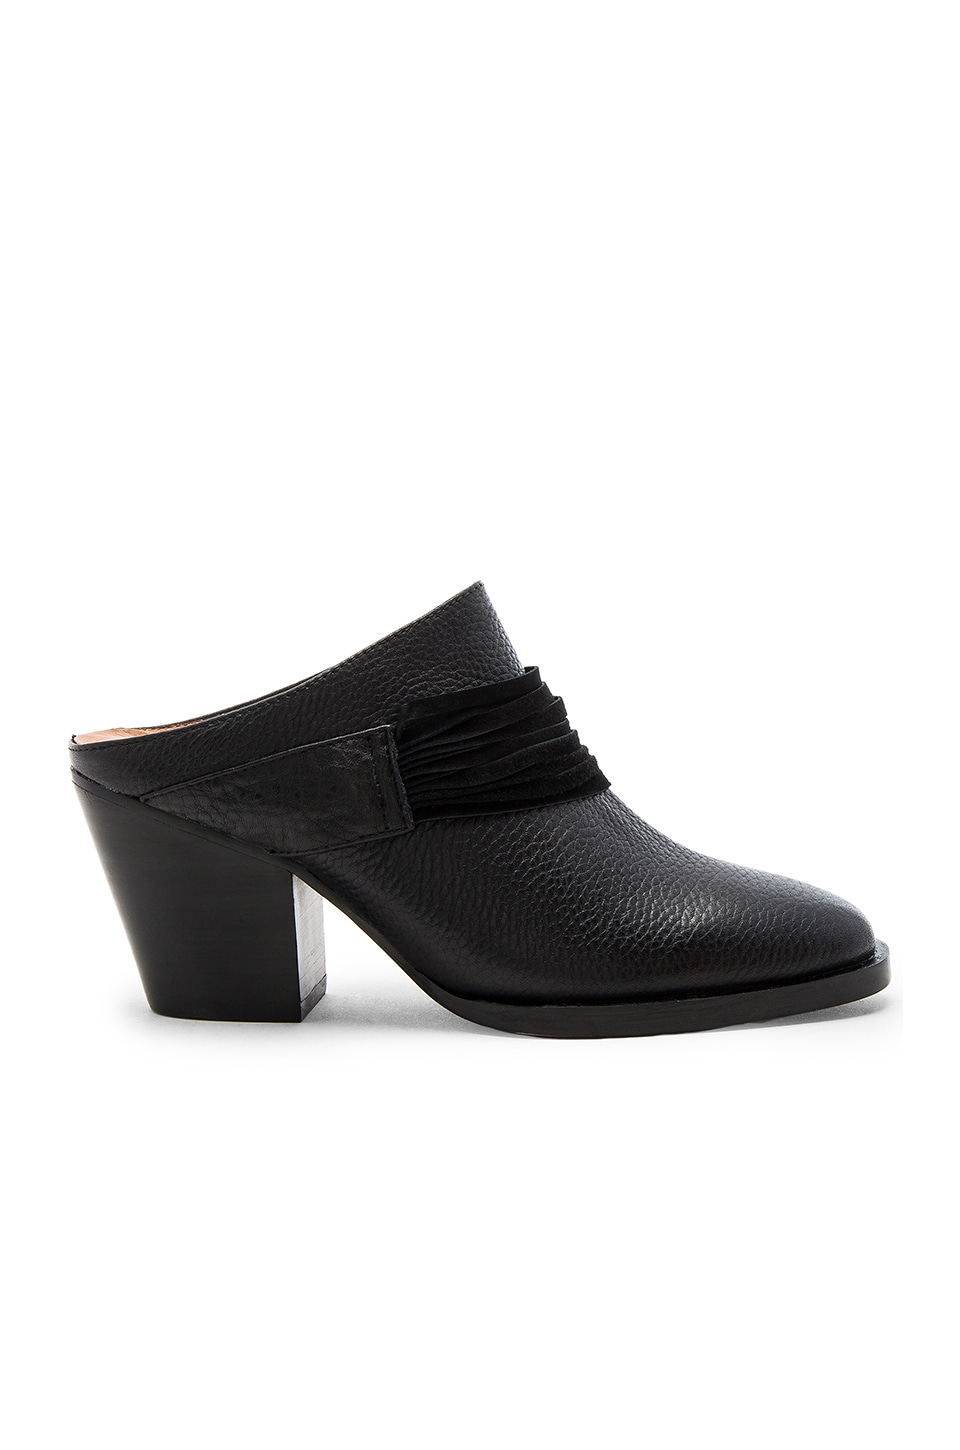 Azzie Booties by Matiko